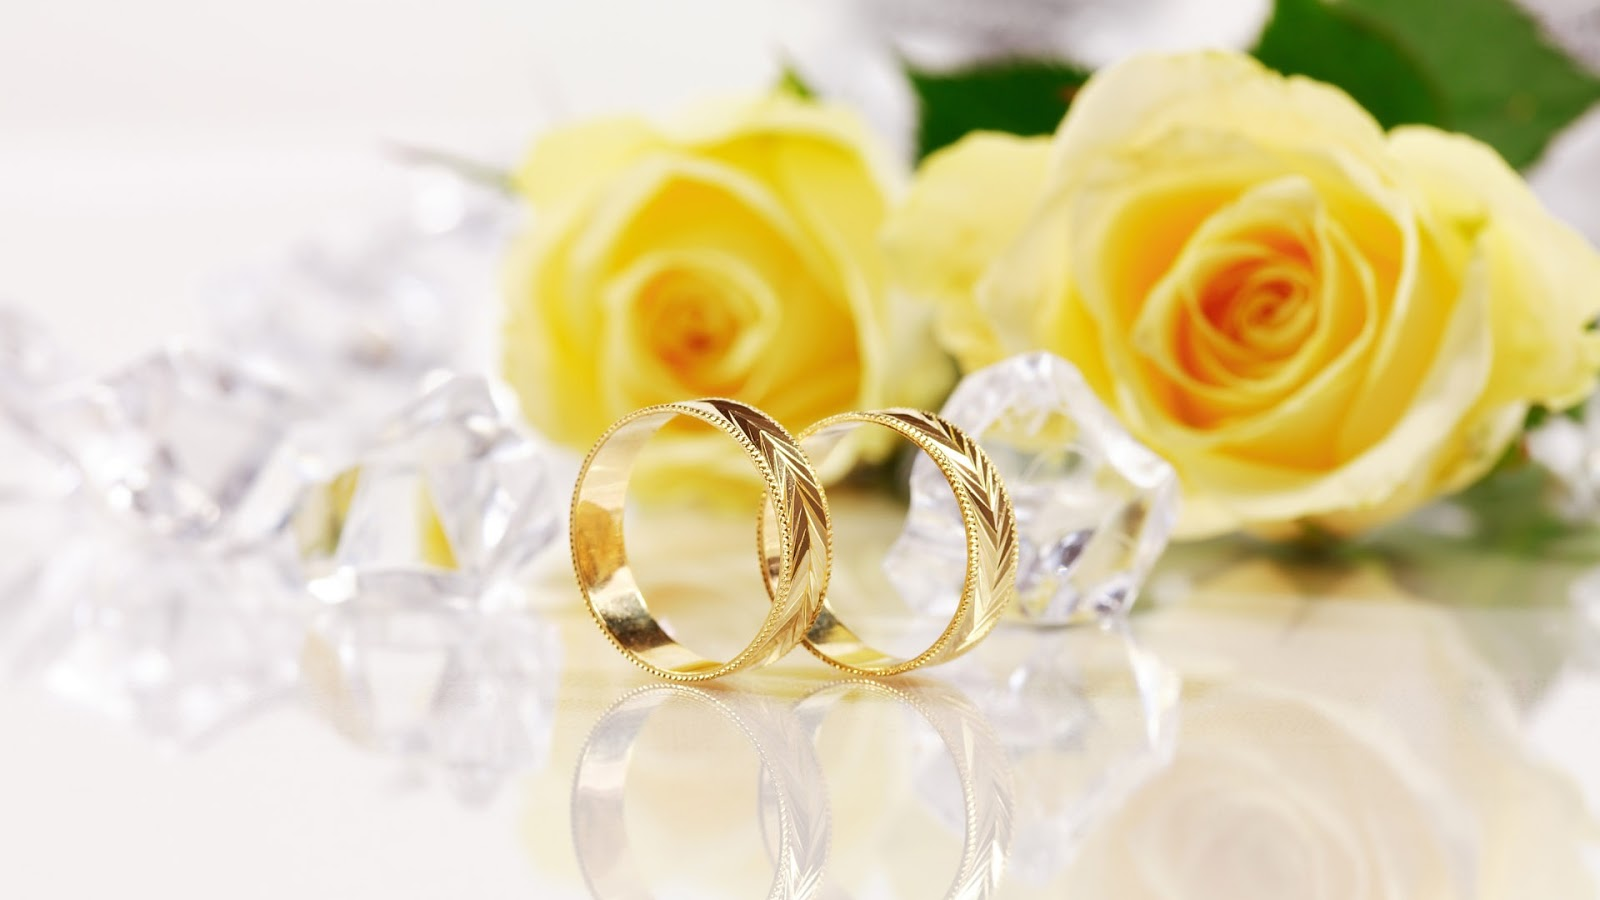 http://2.bp.blogspot.com/-jP-n1J8u6xU/UPPUNjdiZaI/AAAAAAAAPvU/5vbWJ02XNQ0/s1600/yellow-roses-and-gold-wedding-rings.jpg